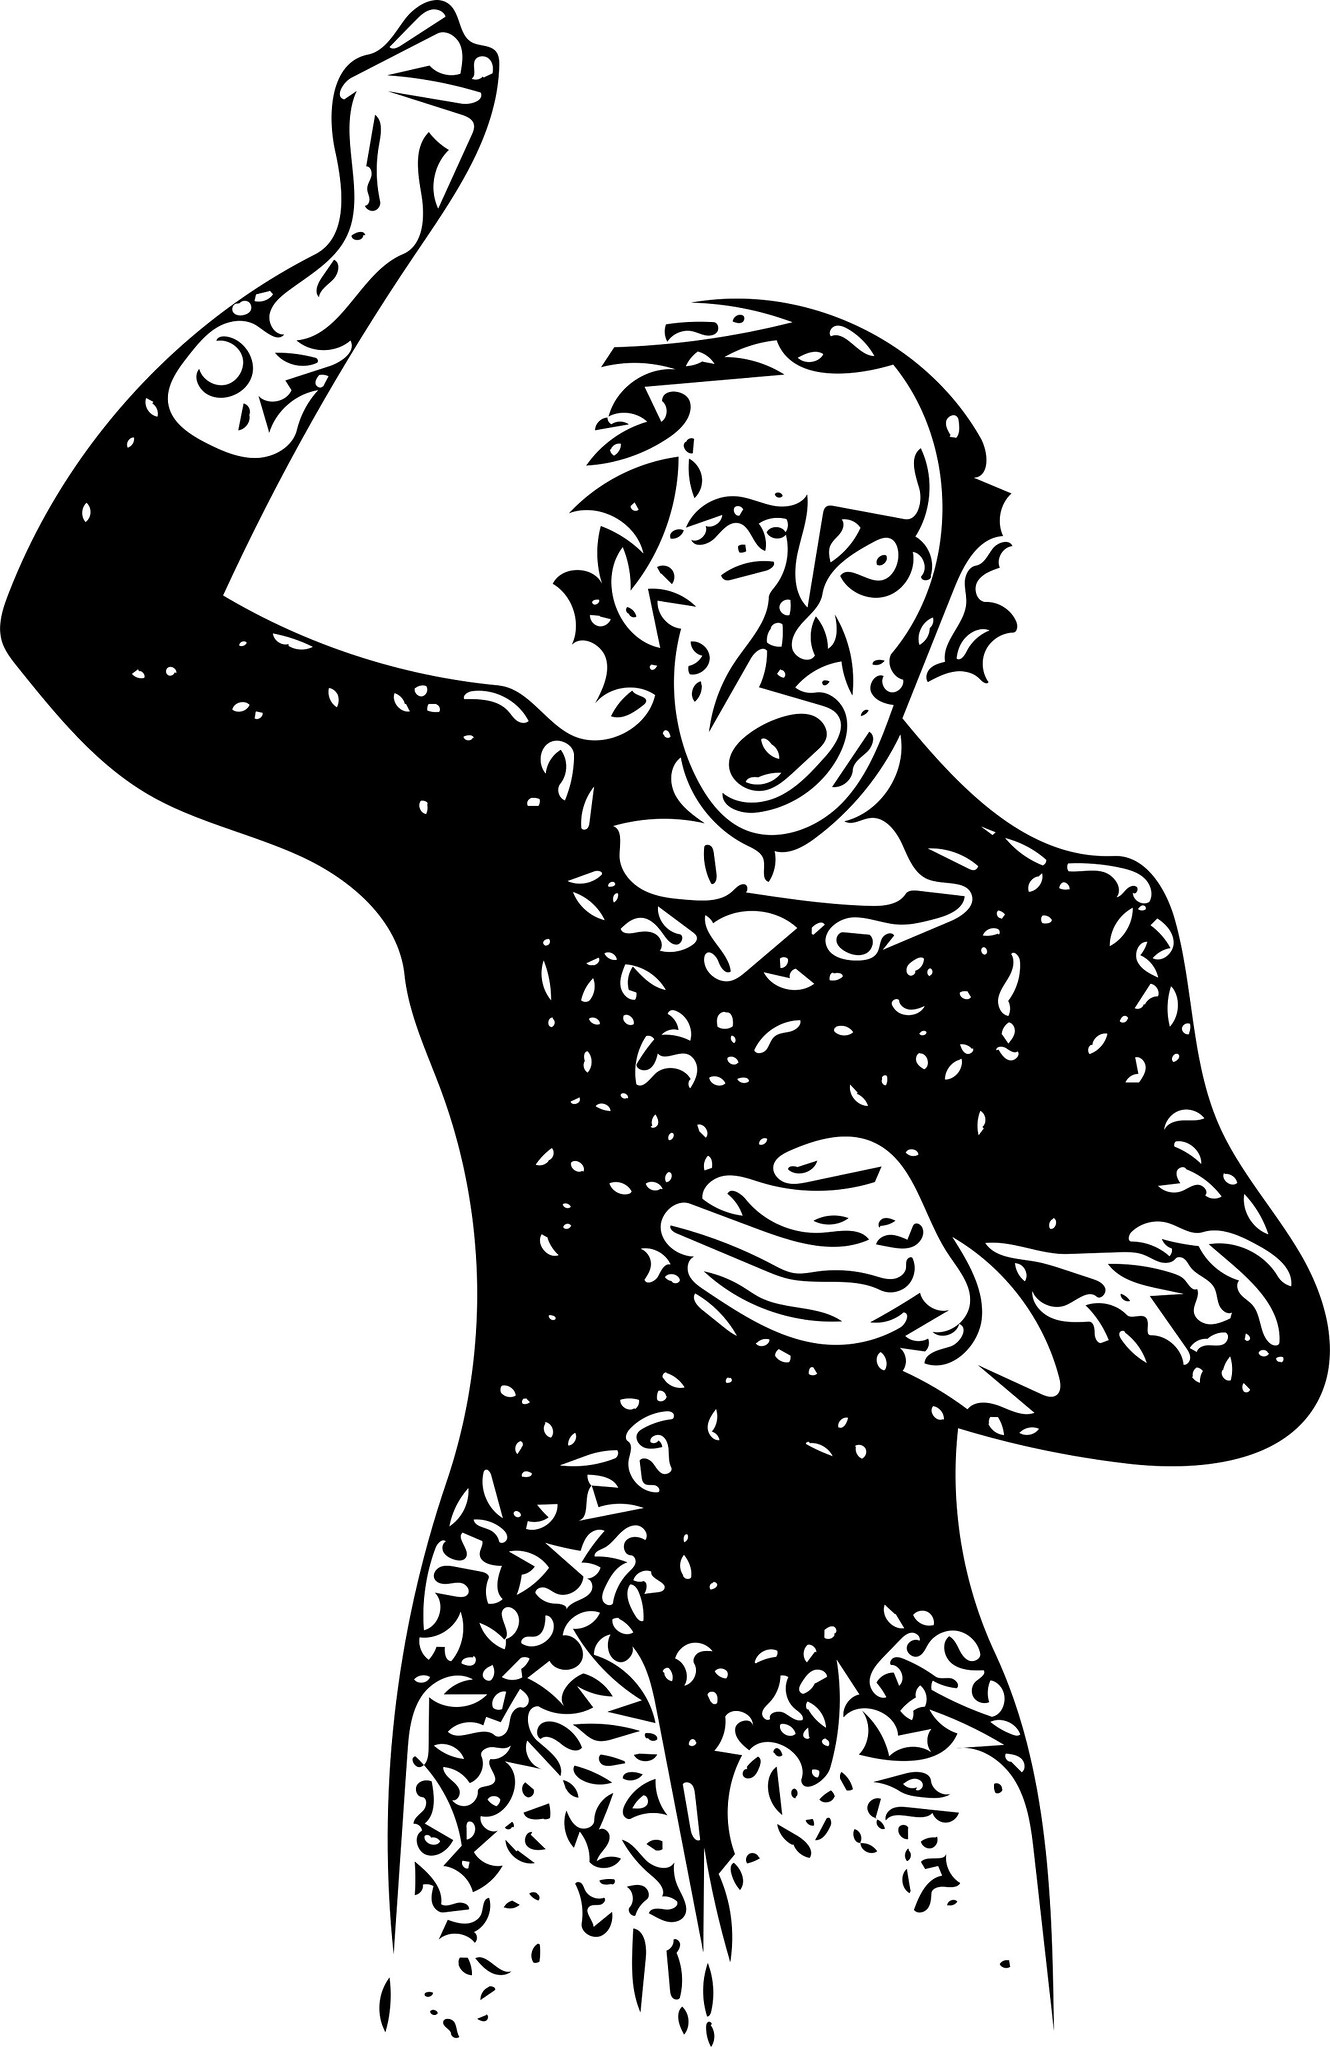 Vectorized British Library book illustration of an orator orating.